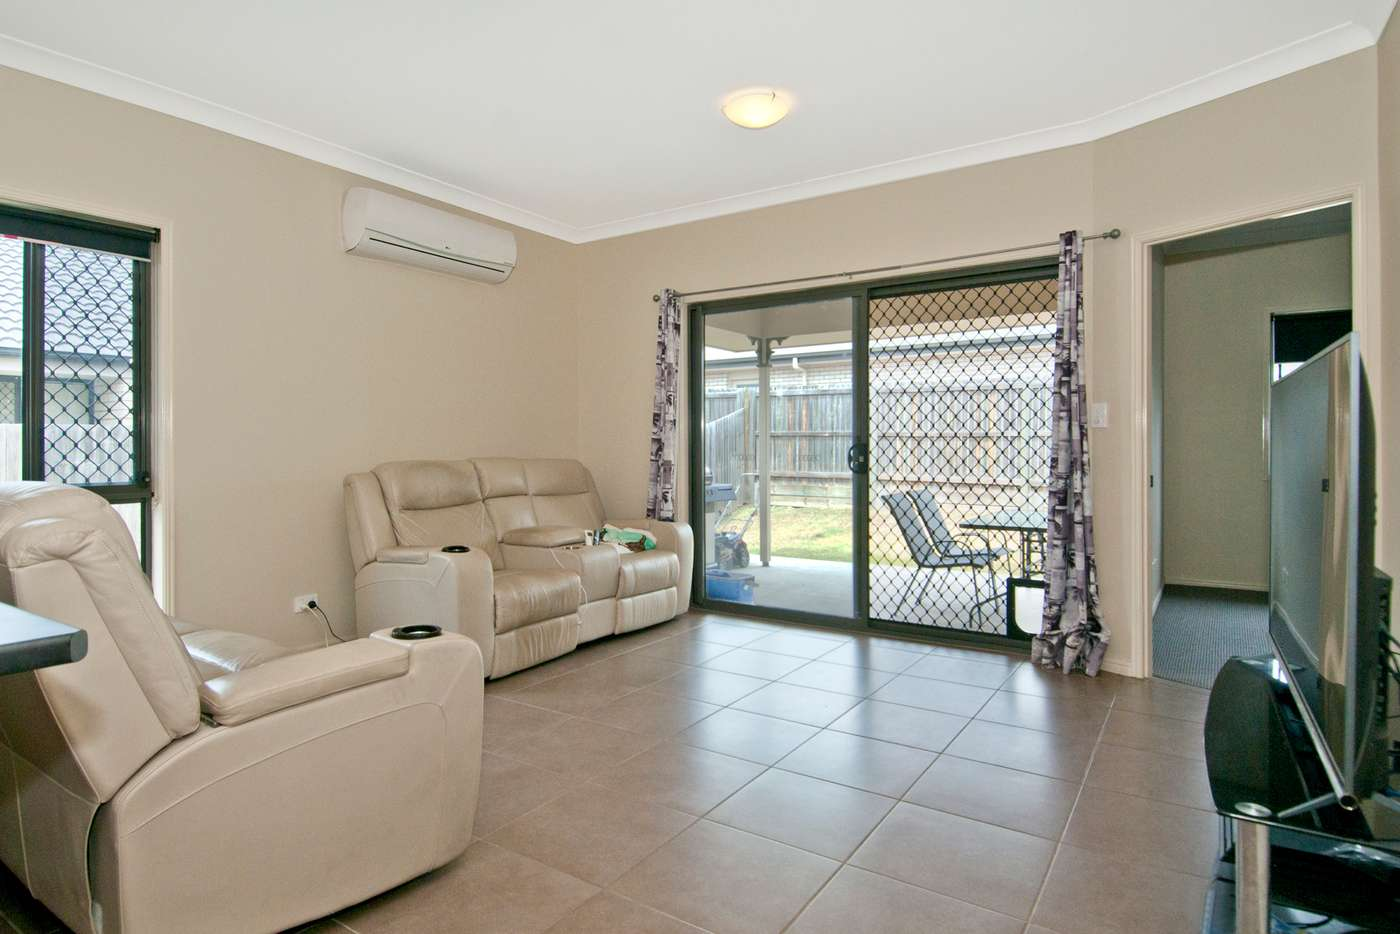 Sixth view of Homely house listing, 45 Carew Street, Yarrabilba QLD 4207